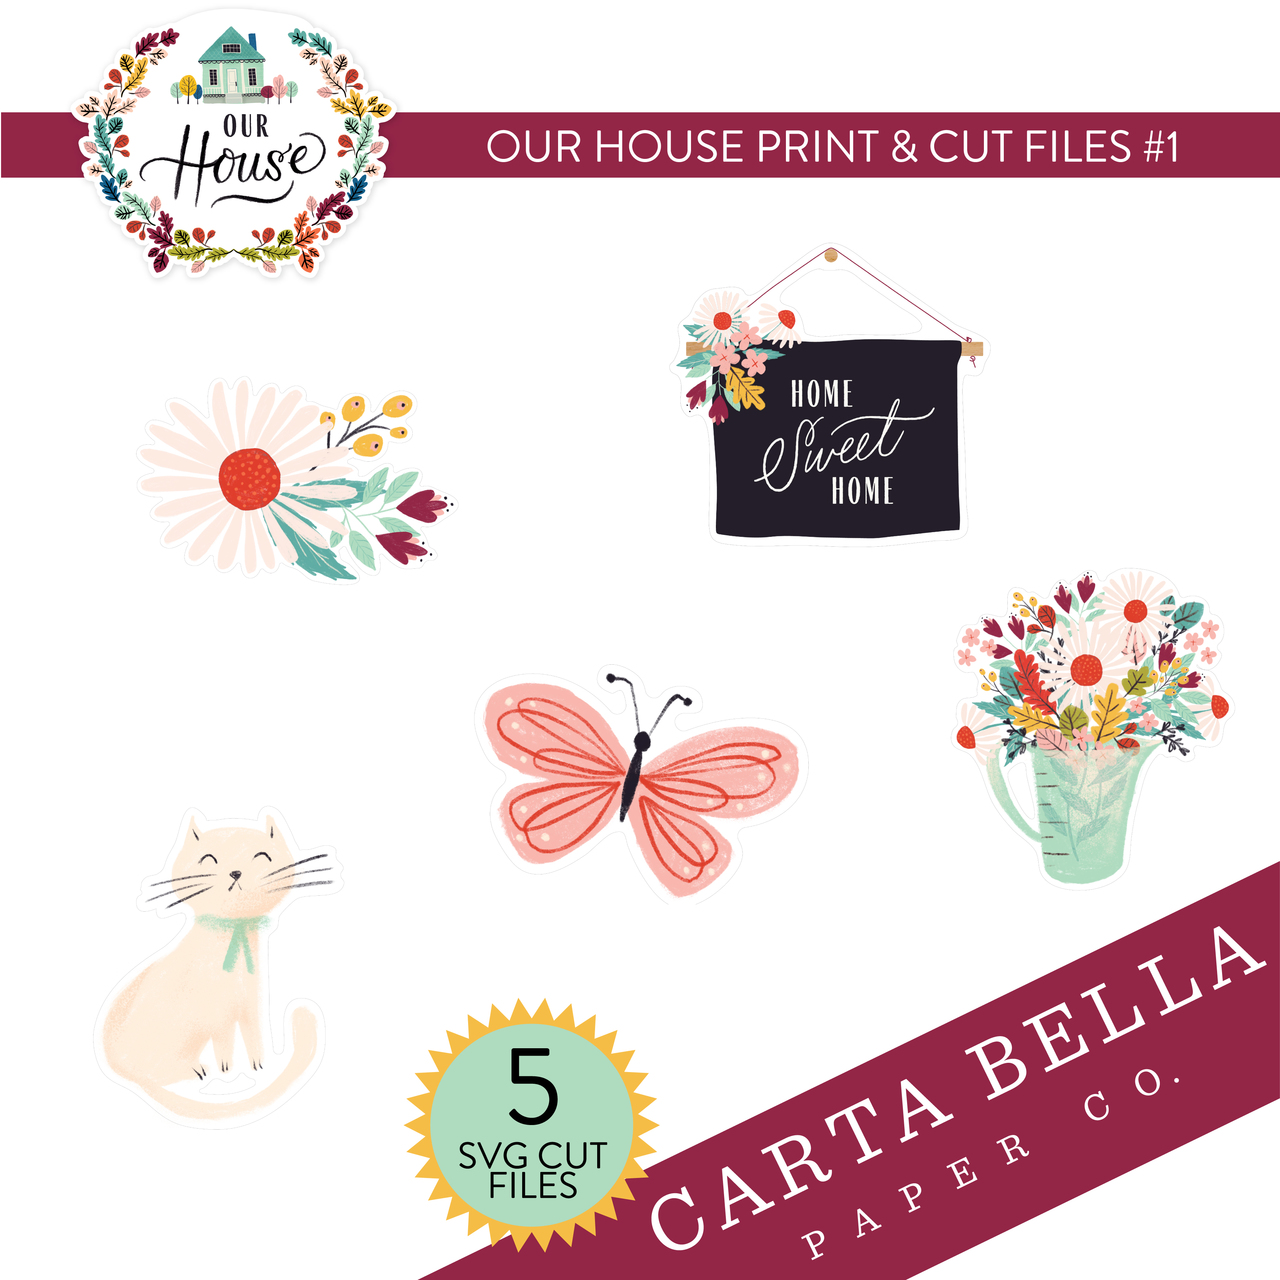 Our House Print & Cut Files #1